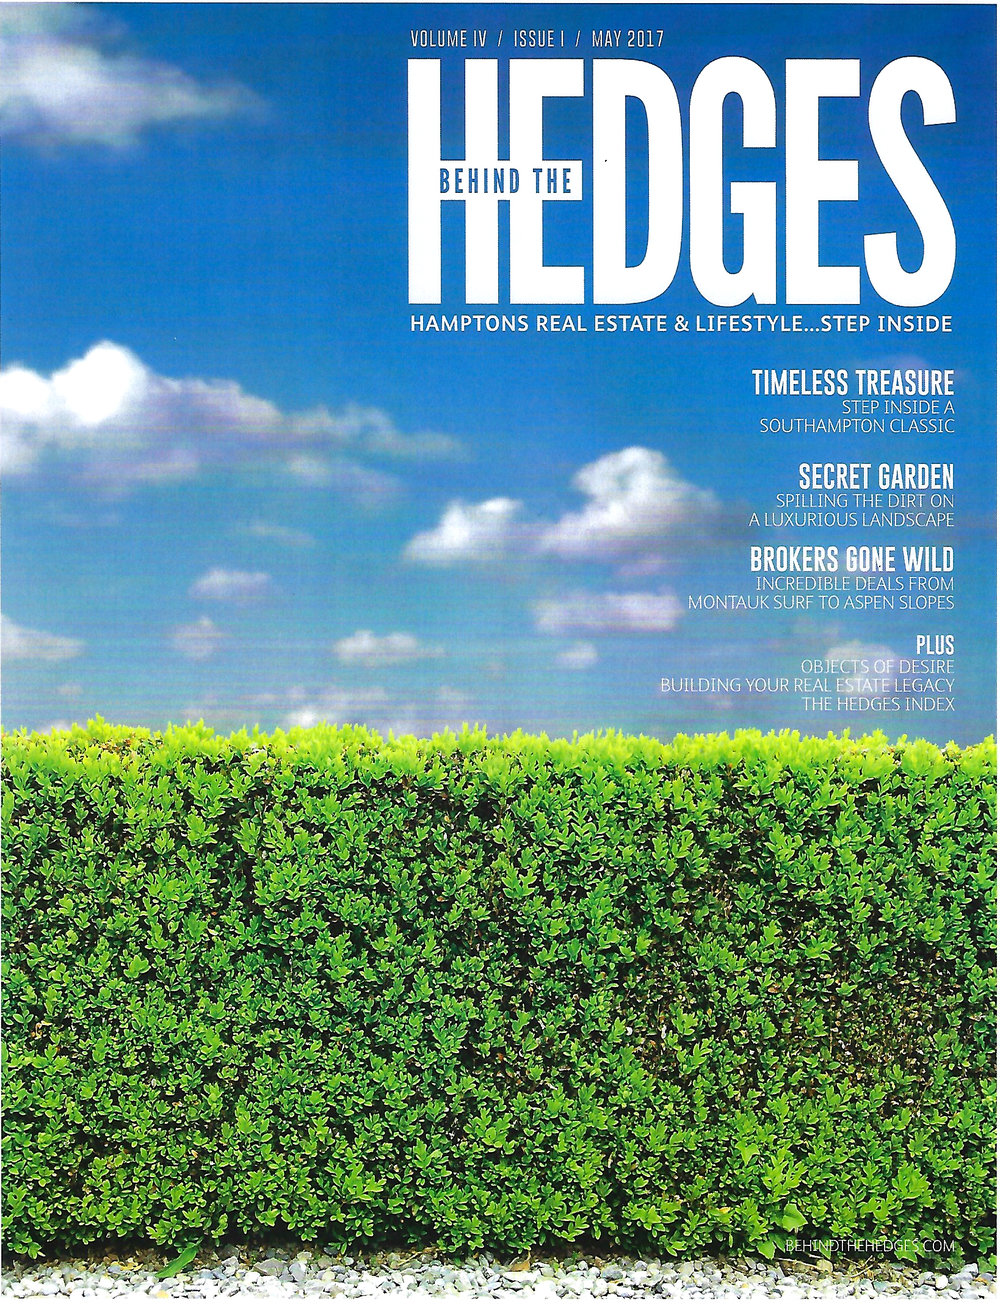 Behind the Hedges - Secret Garden_cover_May 2017.jpg